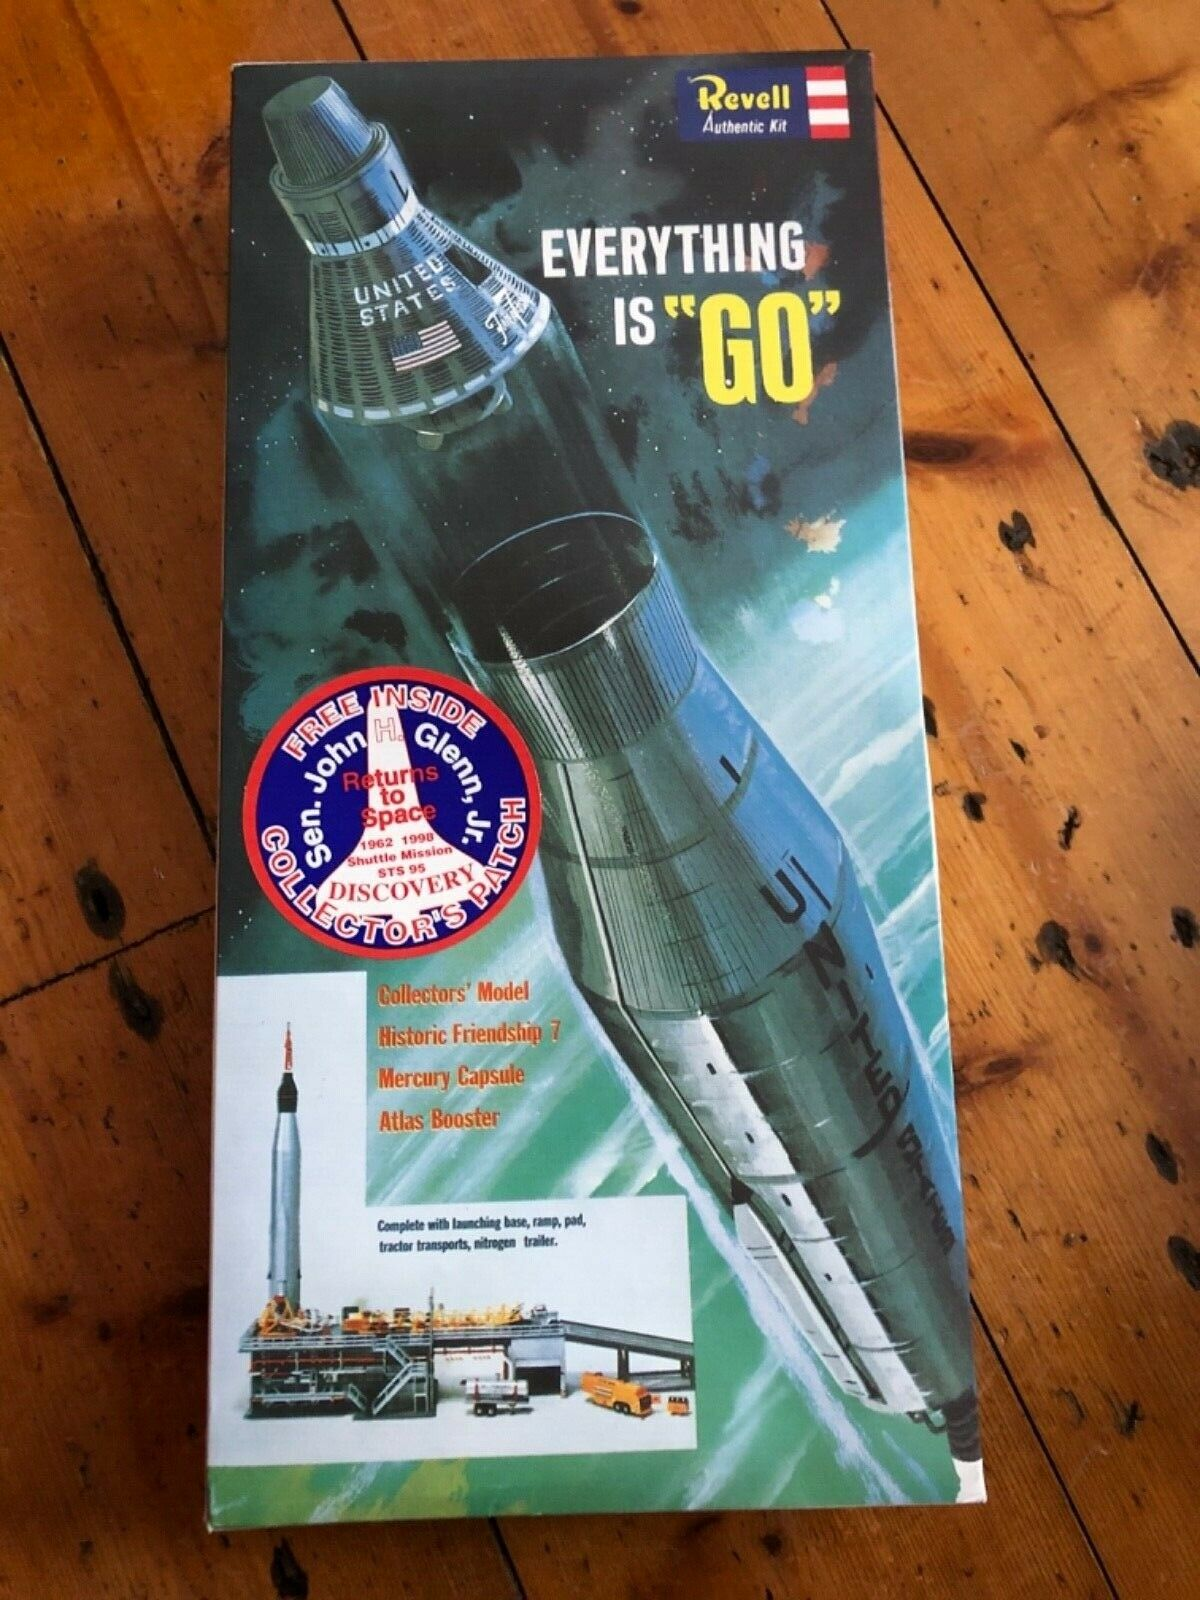 REVELL - Everything Is Go Friendship 7 Mercury Capsule  Construction Toy